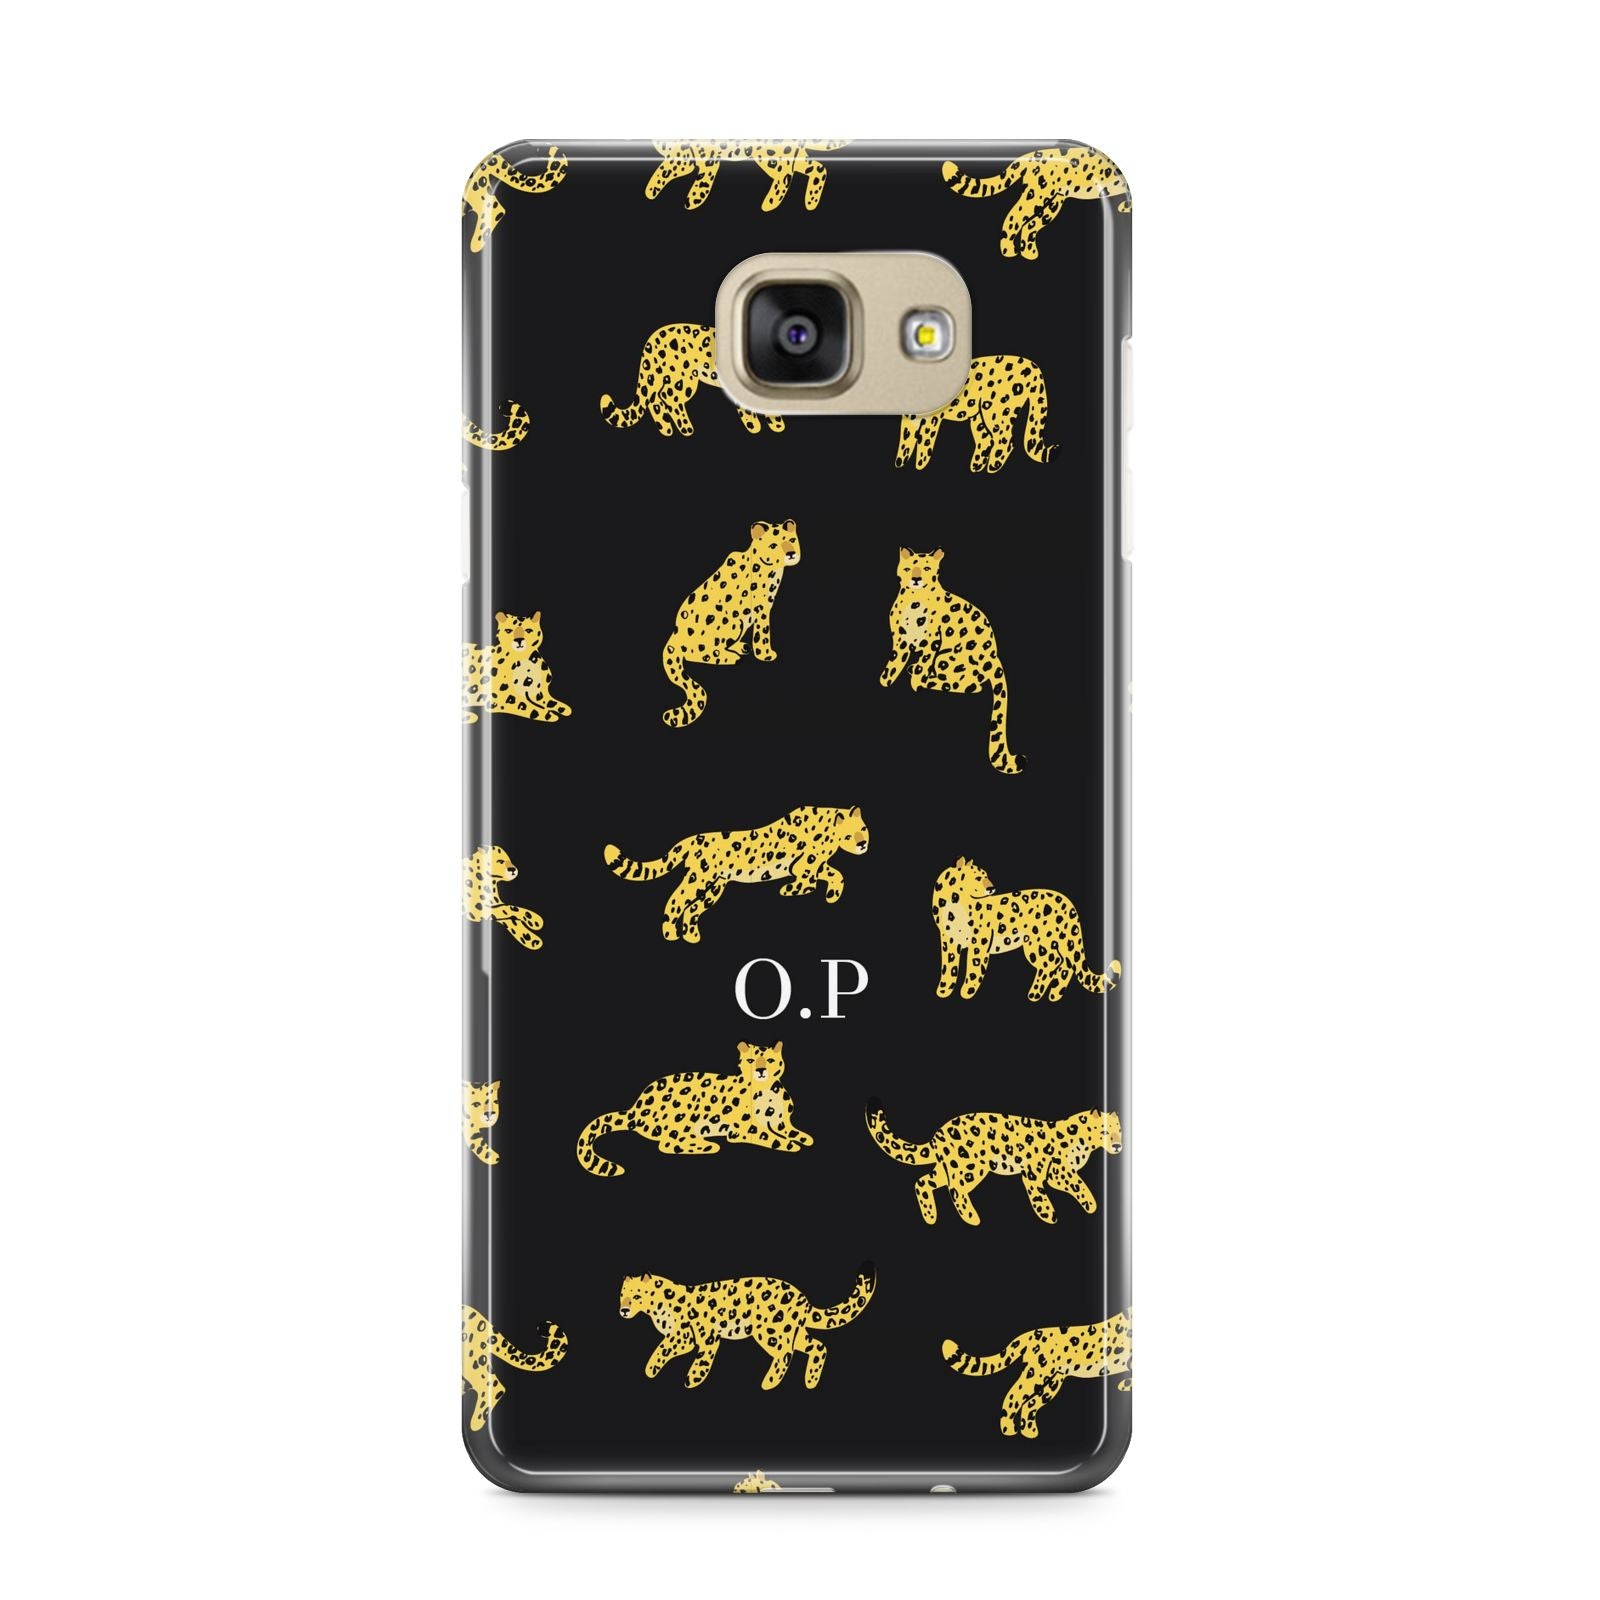 Prowling Leopard Samsung Galaxy A9 2016 Case on gold phone